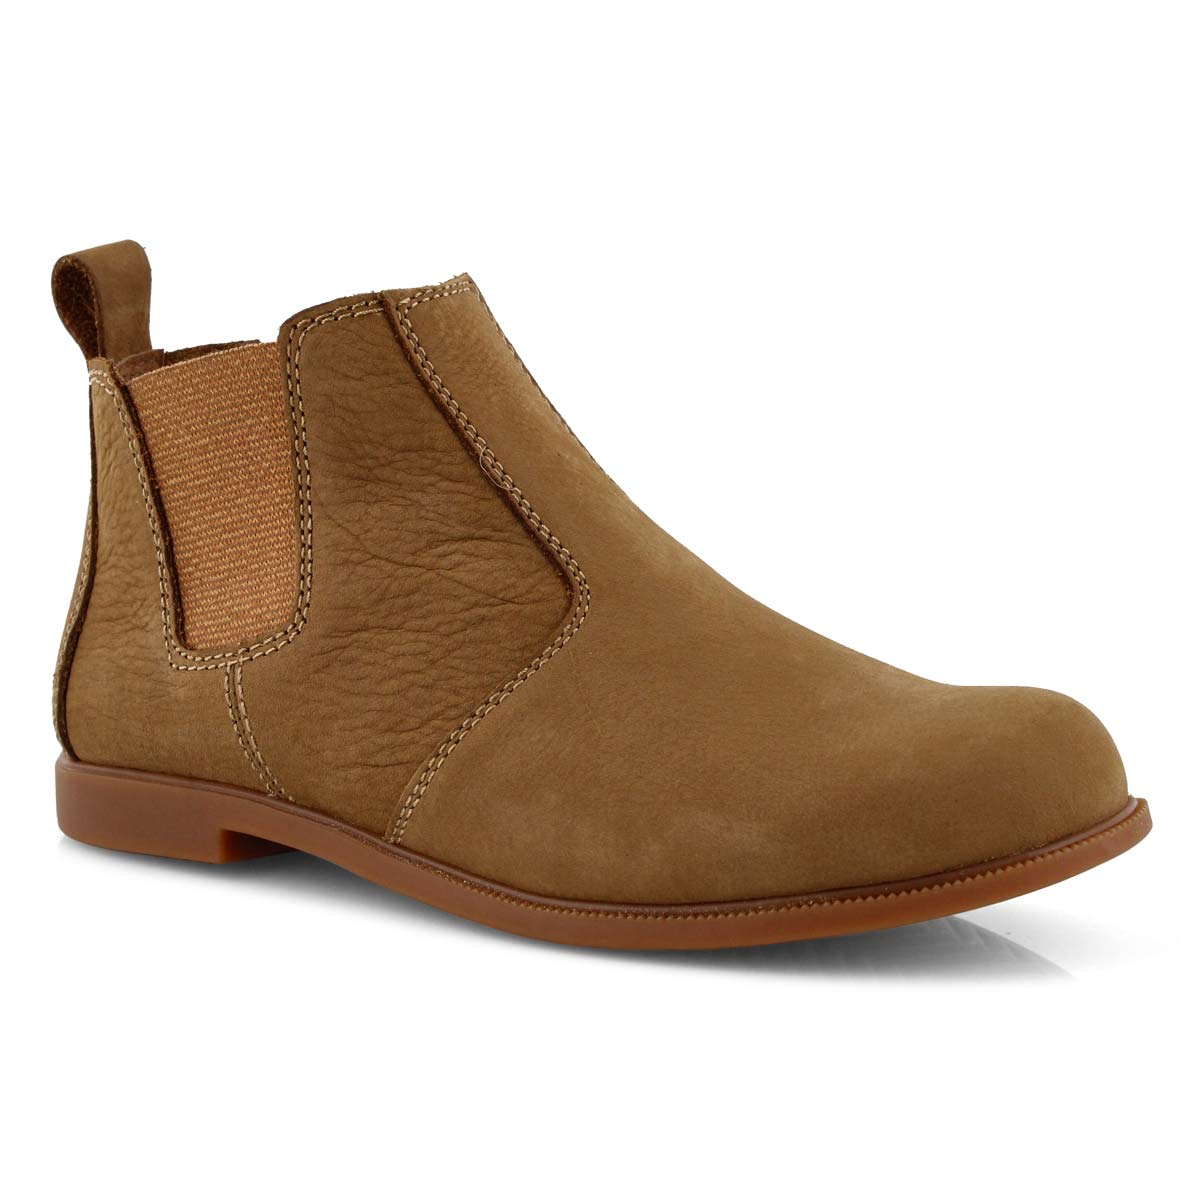 Lds Low-Rider wheat chelsea boot